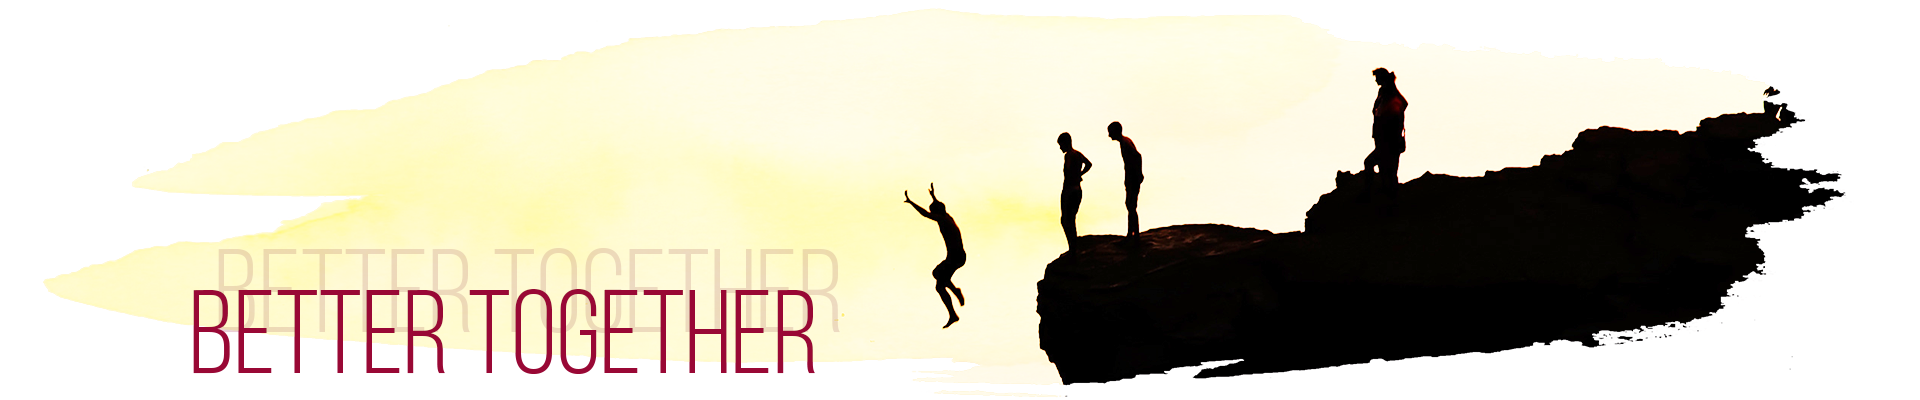 Better Together - Never go alone cliff jumping